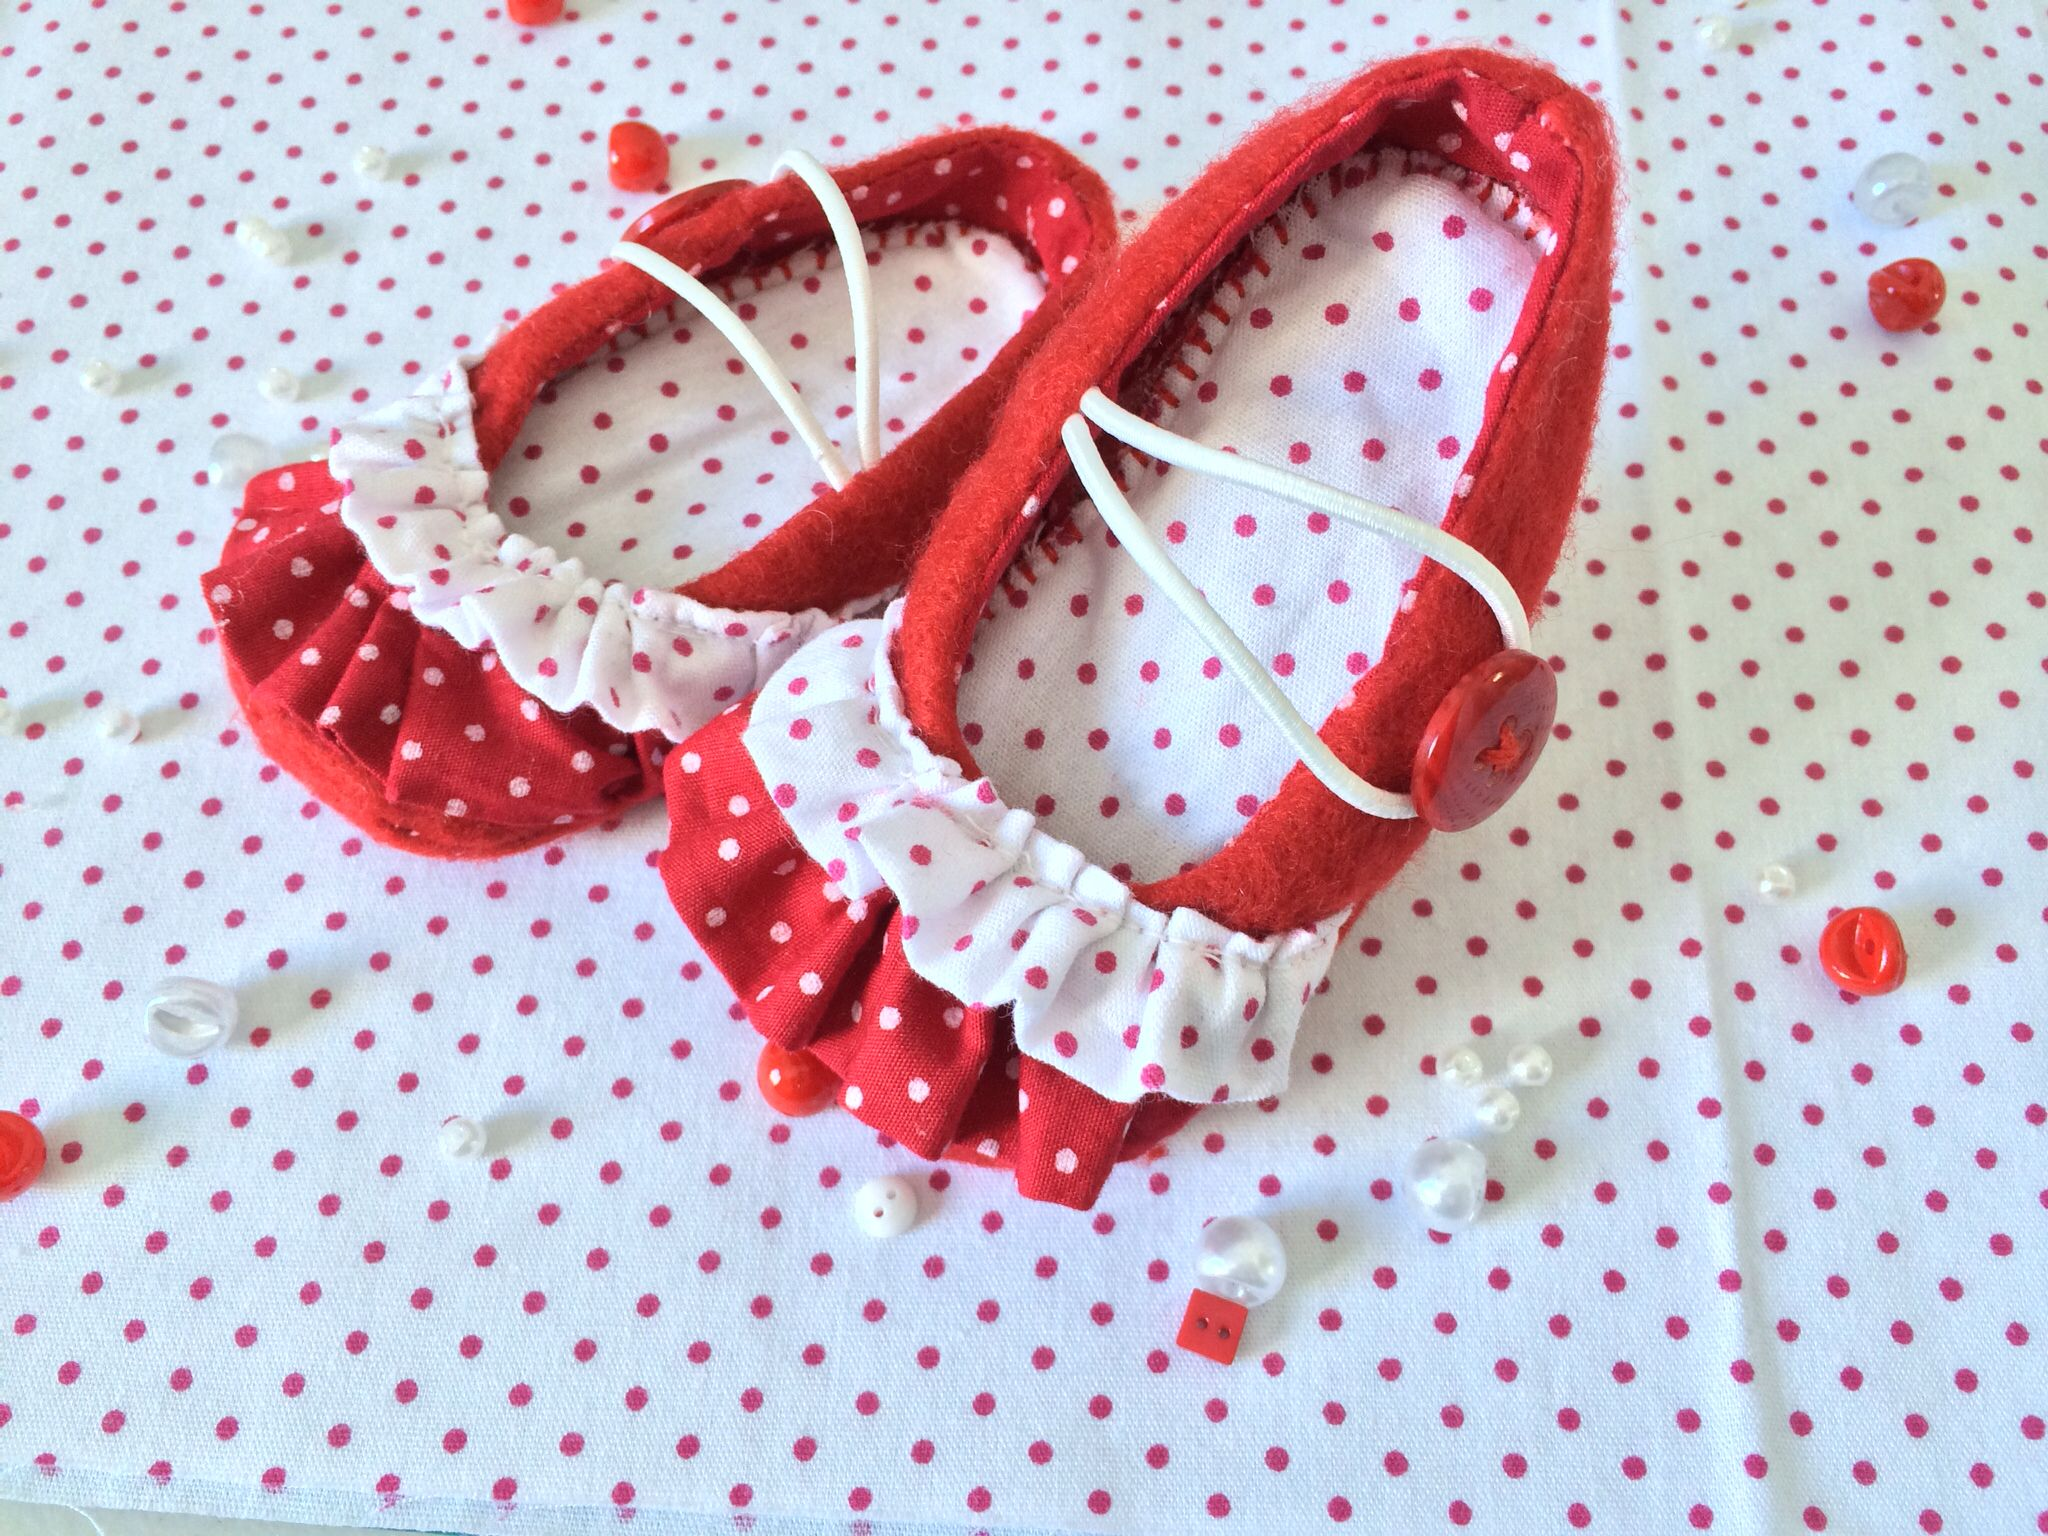 Red baby felt shoes